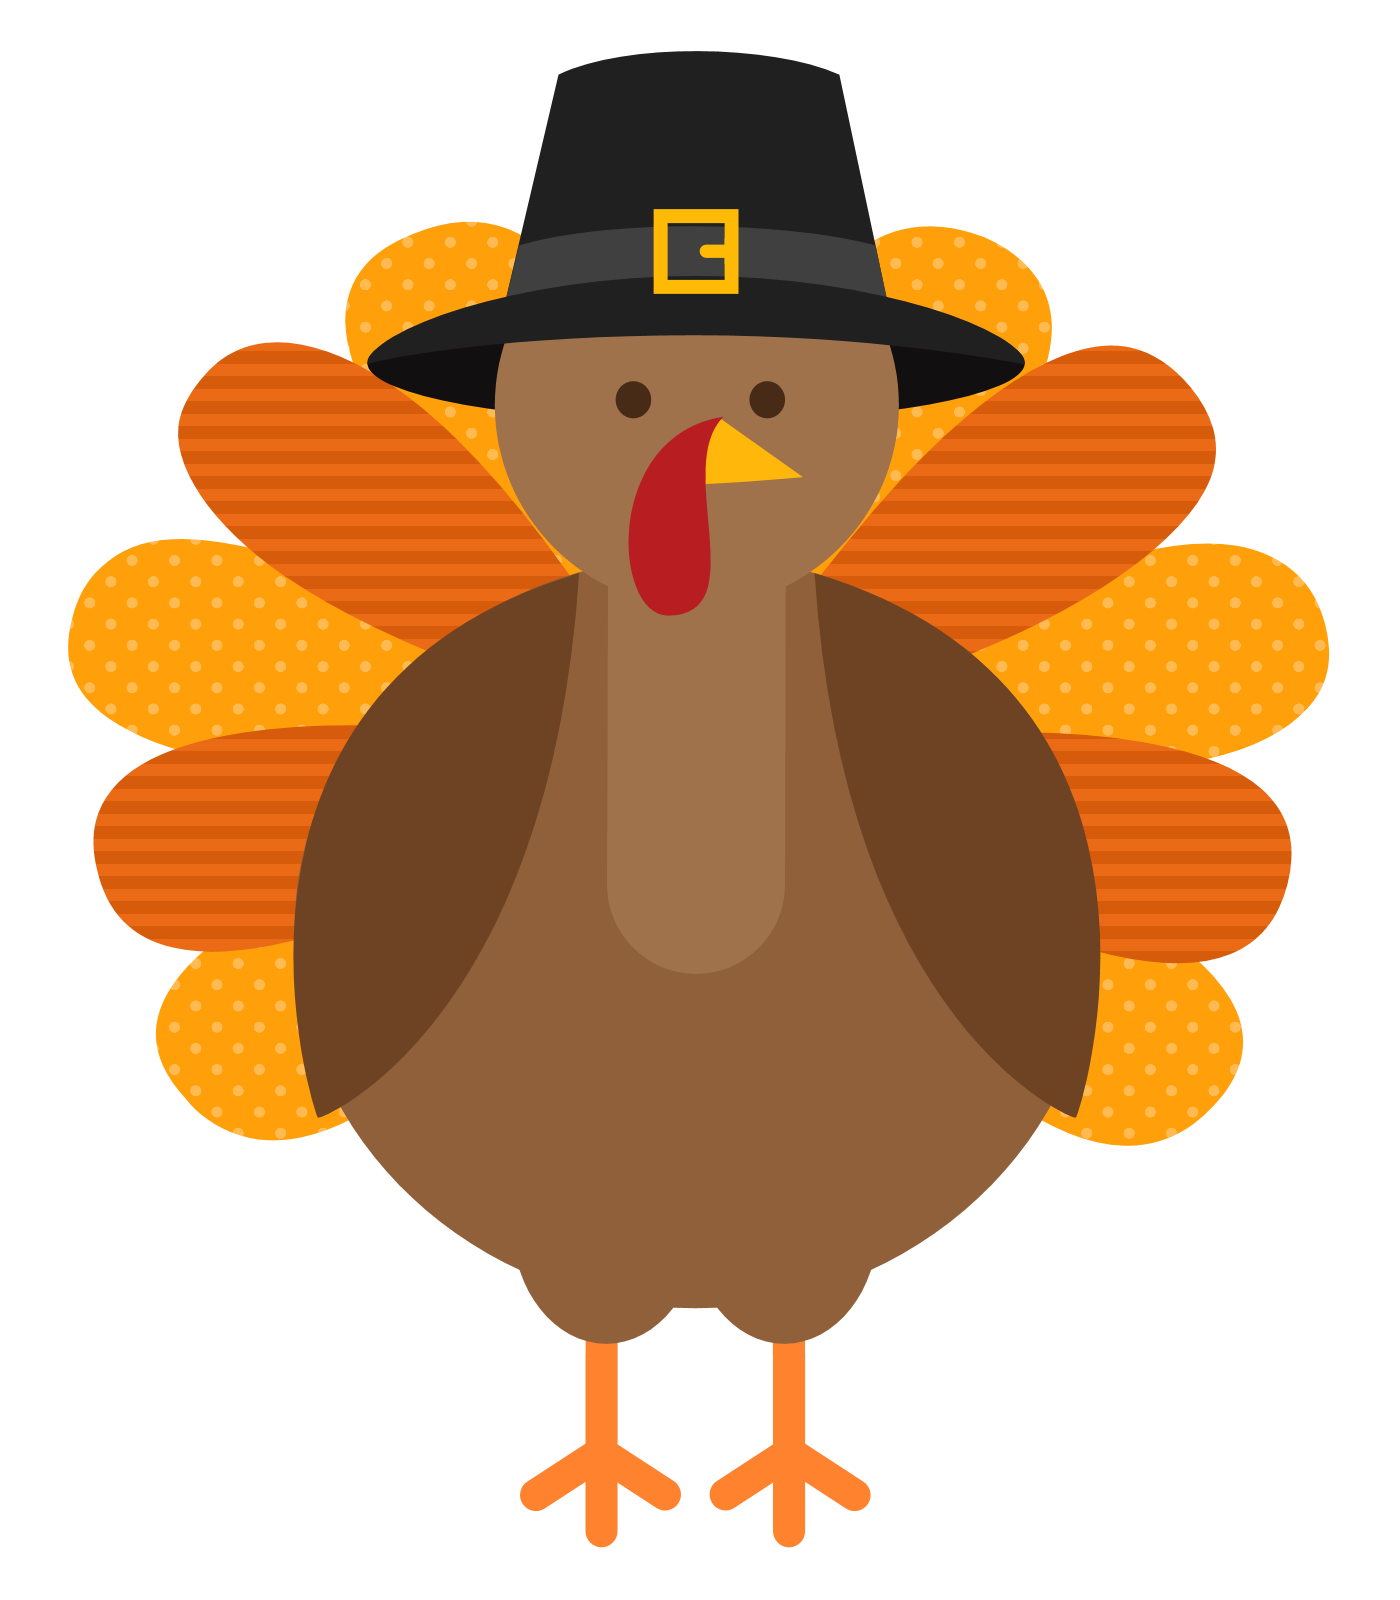 Turkye clipart vector royalty free library Free Thanksgiving Cliparts, Download Free Clip Art, Free Clip Art on ... vector royalty free library